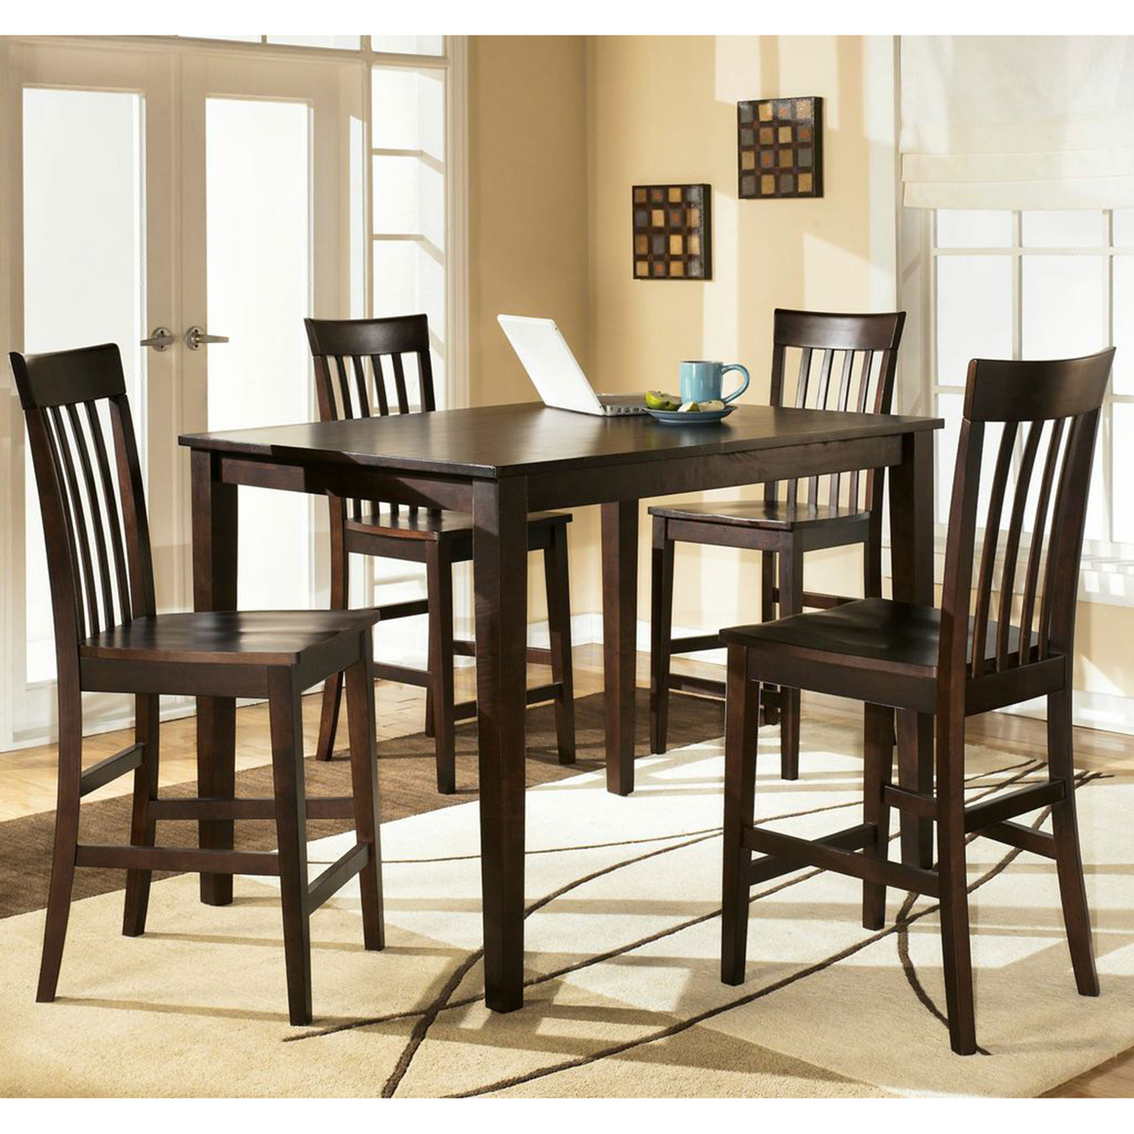 All American Mattress And Furniture Nc: Ashley Hyland 5 Pc. Counter Height Dining Set